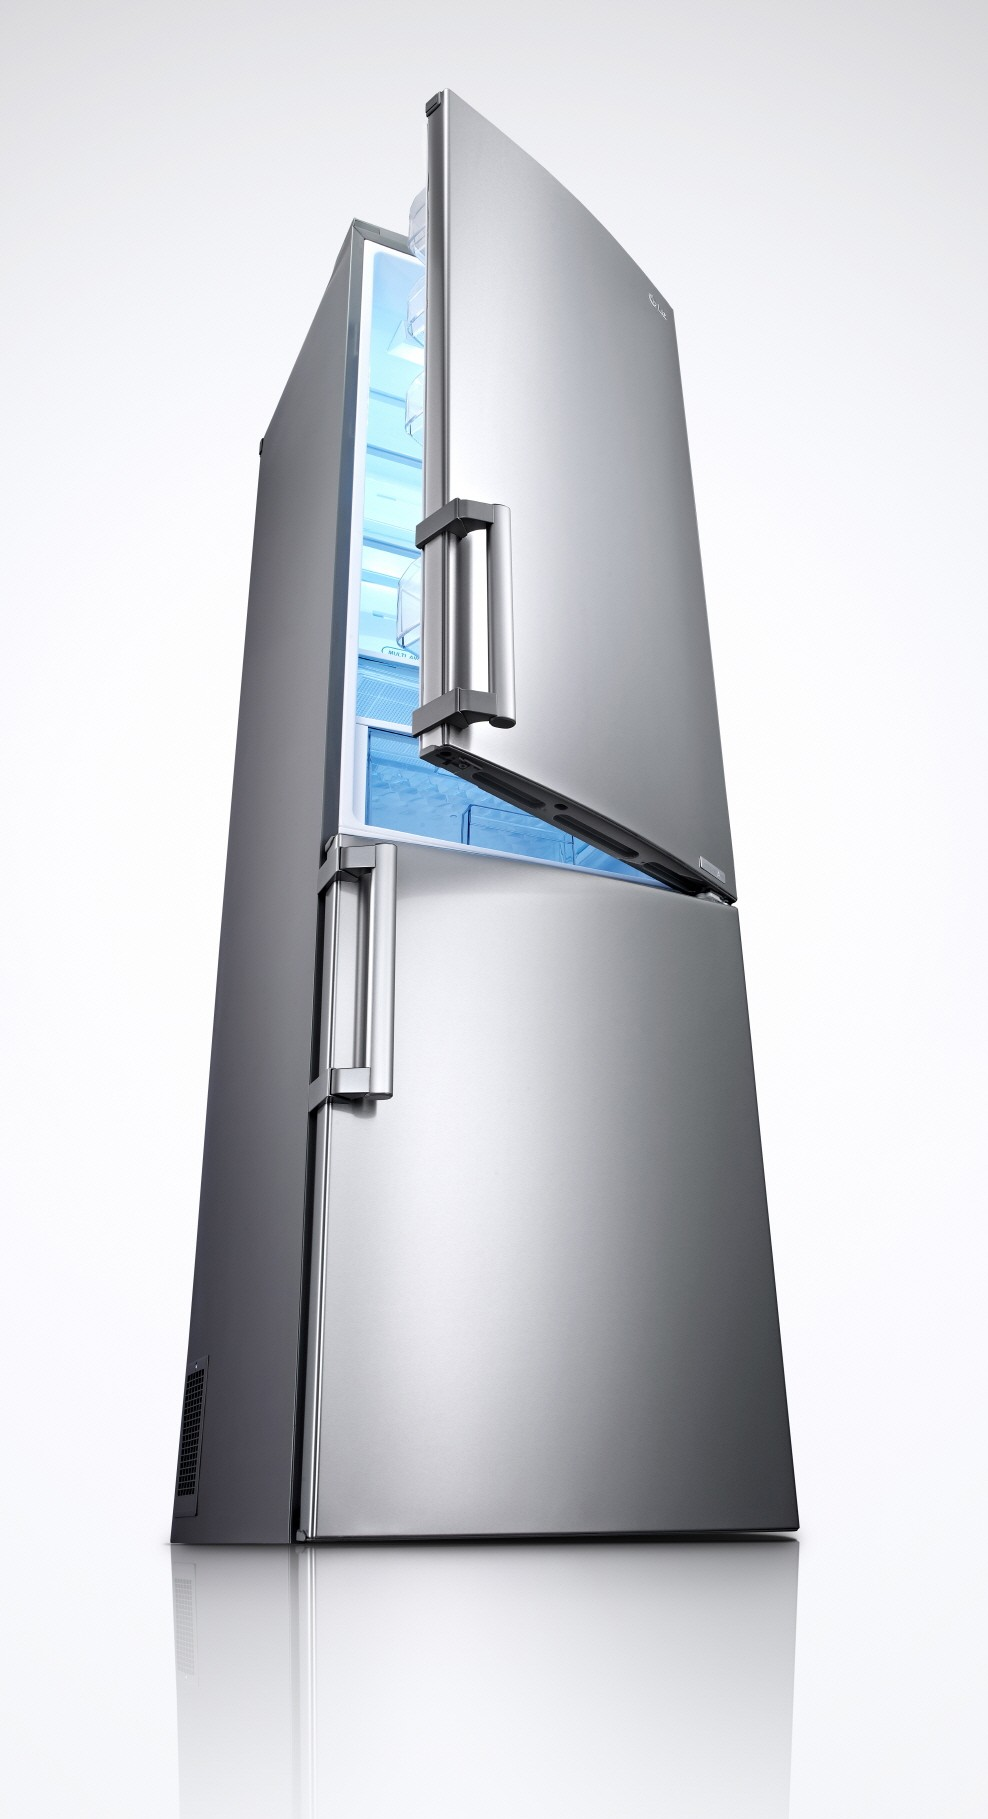 LG bottom-freezer refrigerator with its refrigerator's door slightly opened